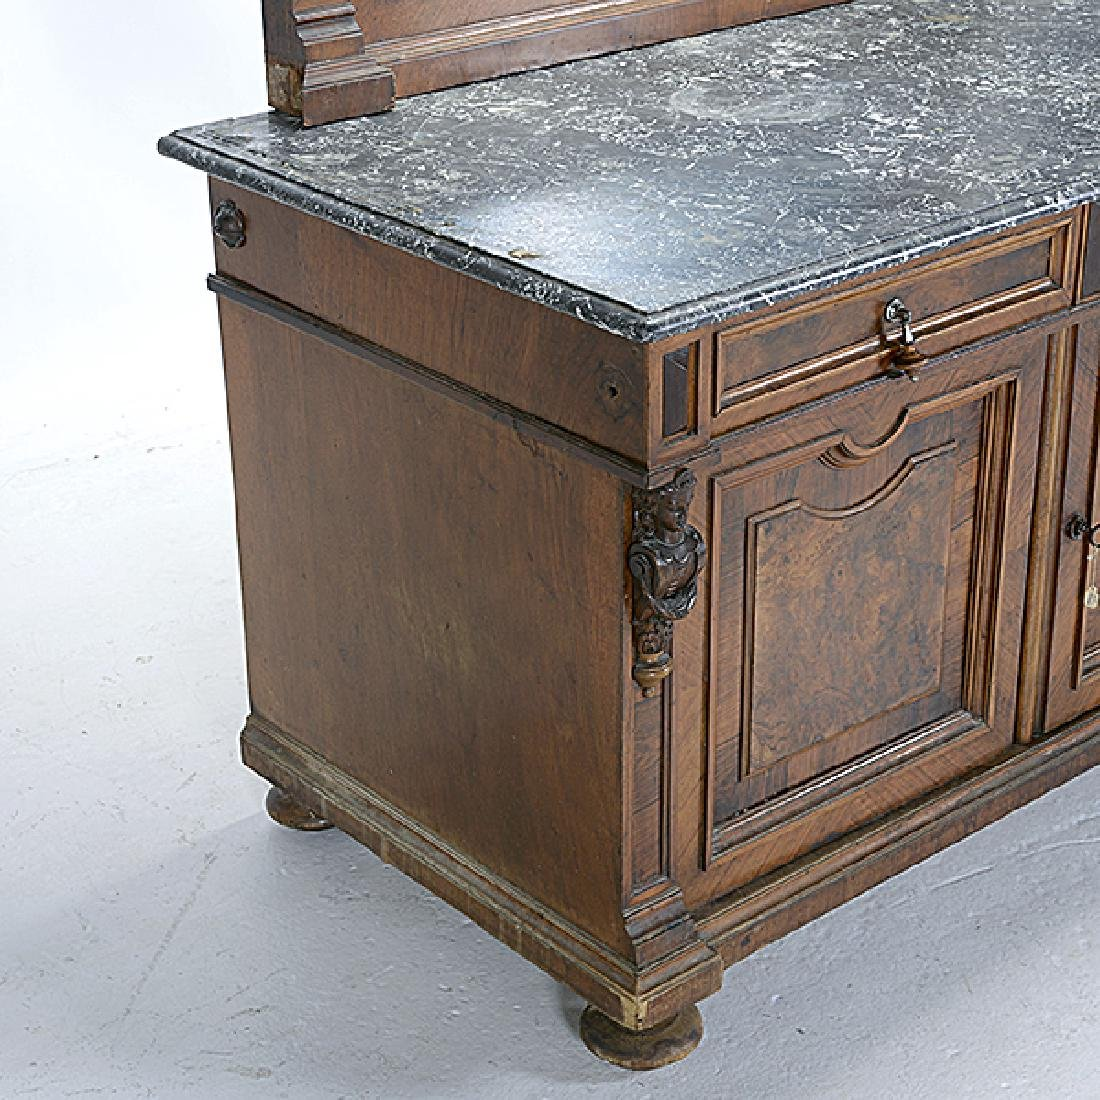 Pair of Rococo Revival Bedside Tables with Commode - 9